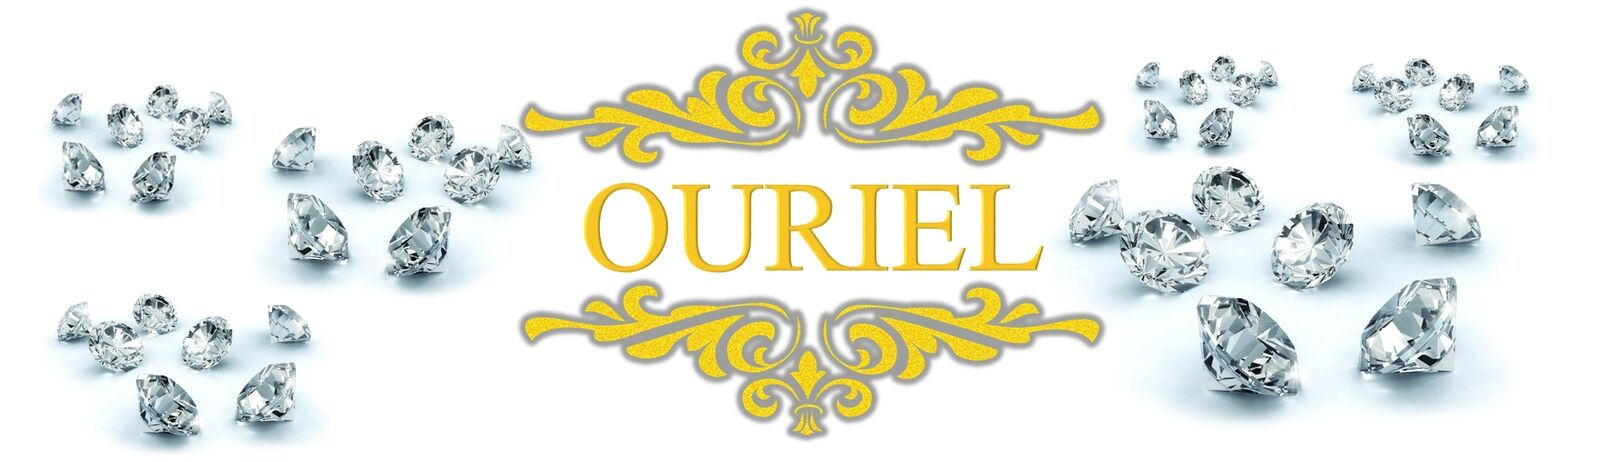 OURIEL